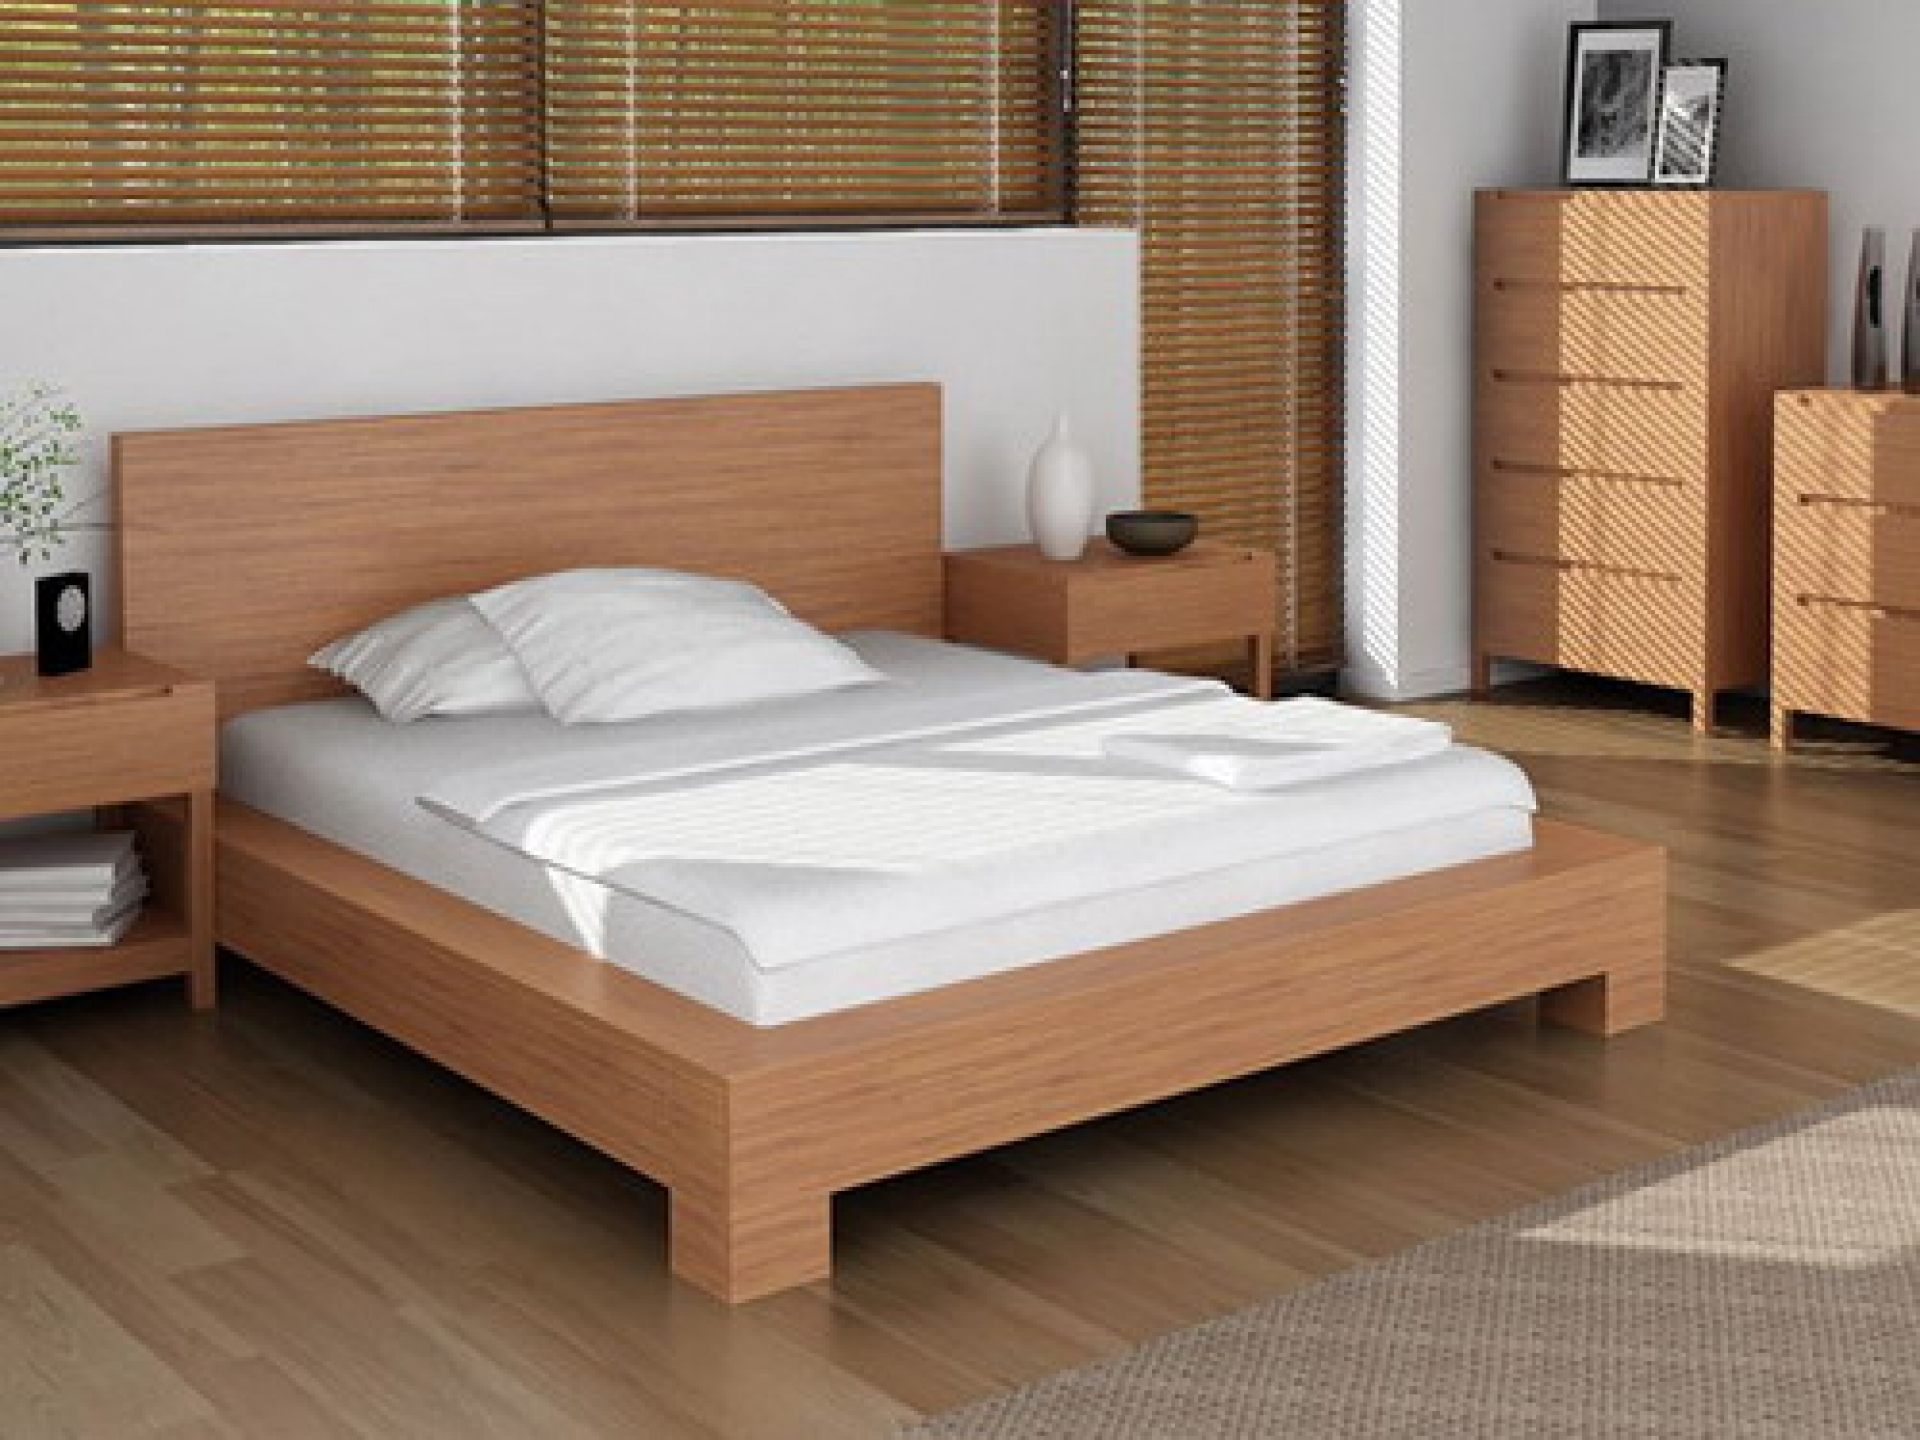 Modern Wooden Beds ~ Simple wood bed frame ideas homesfeed